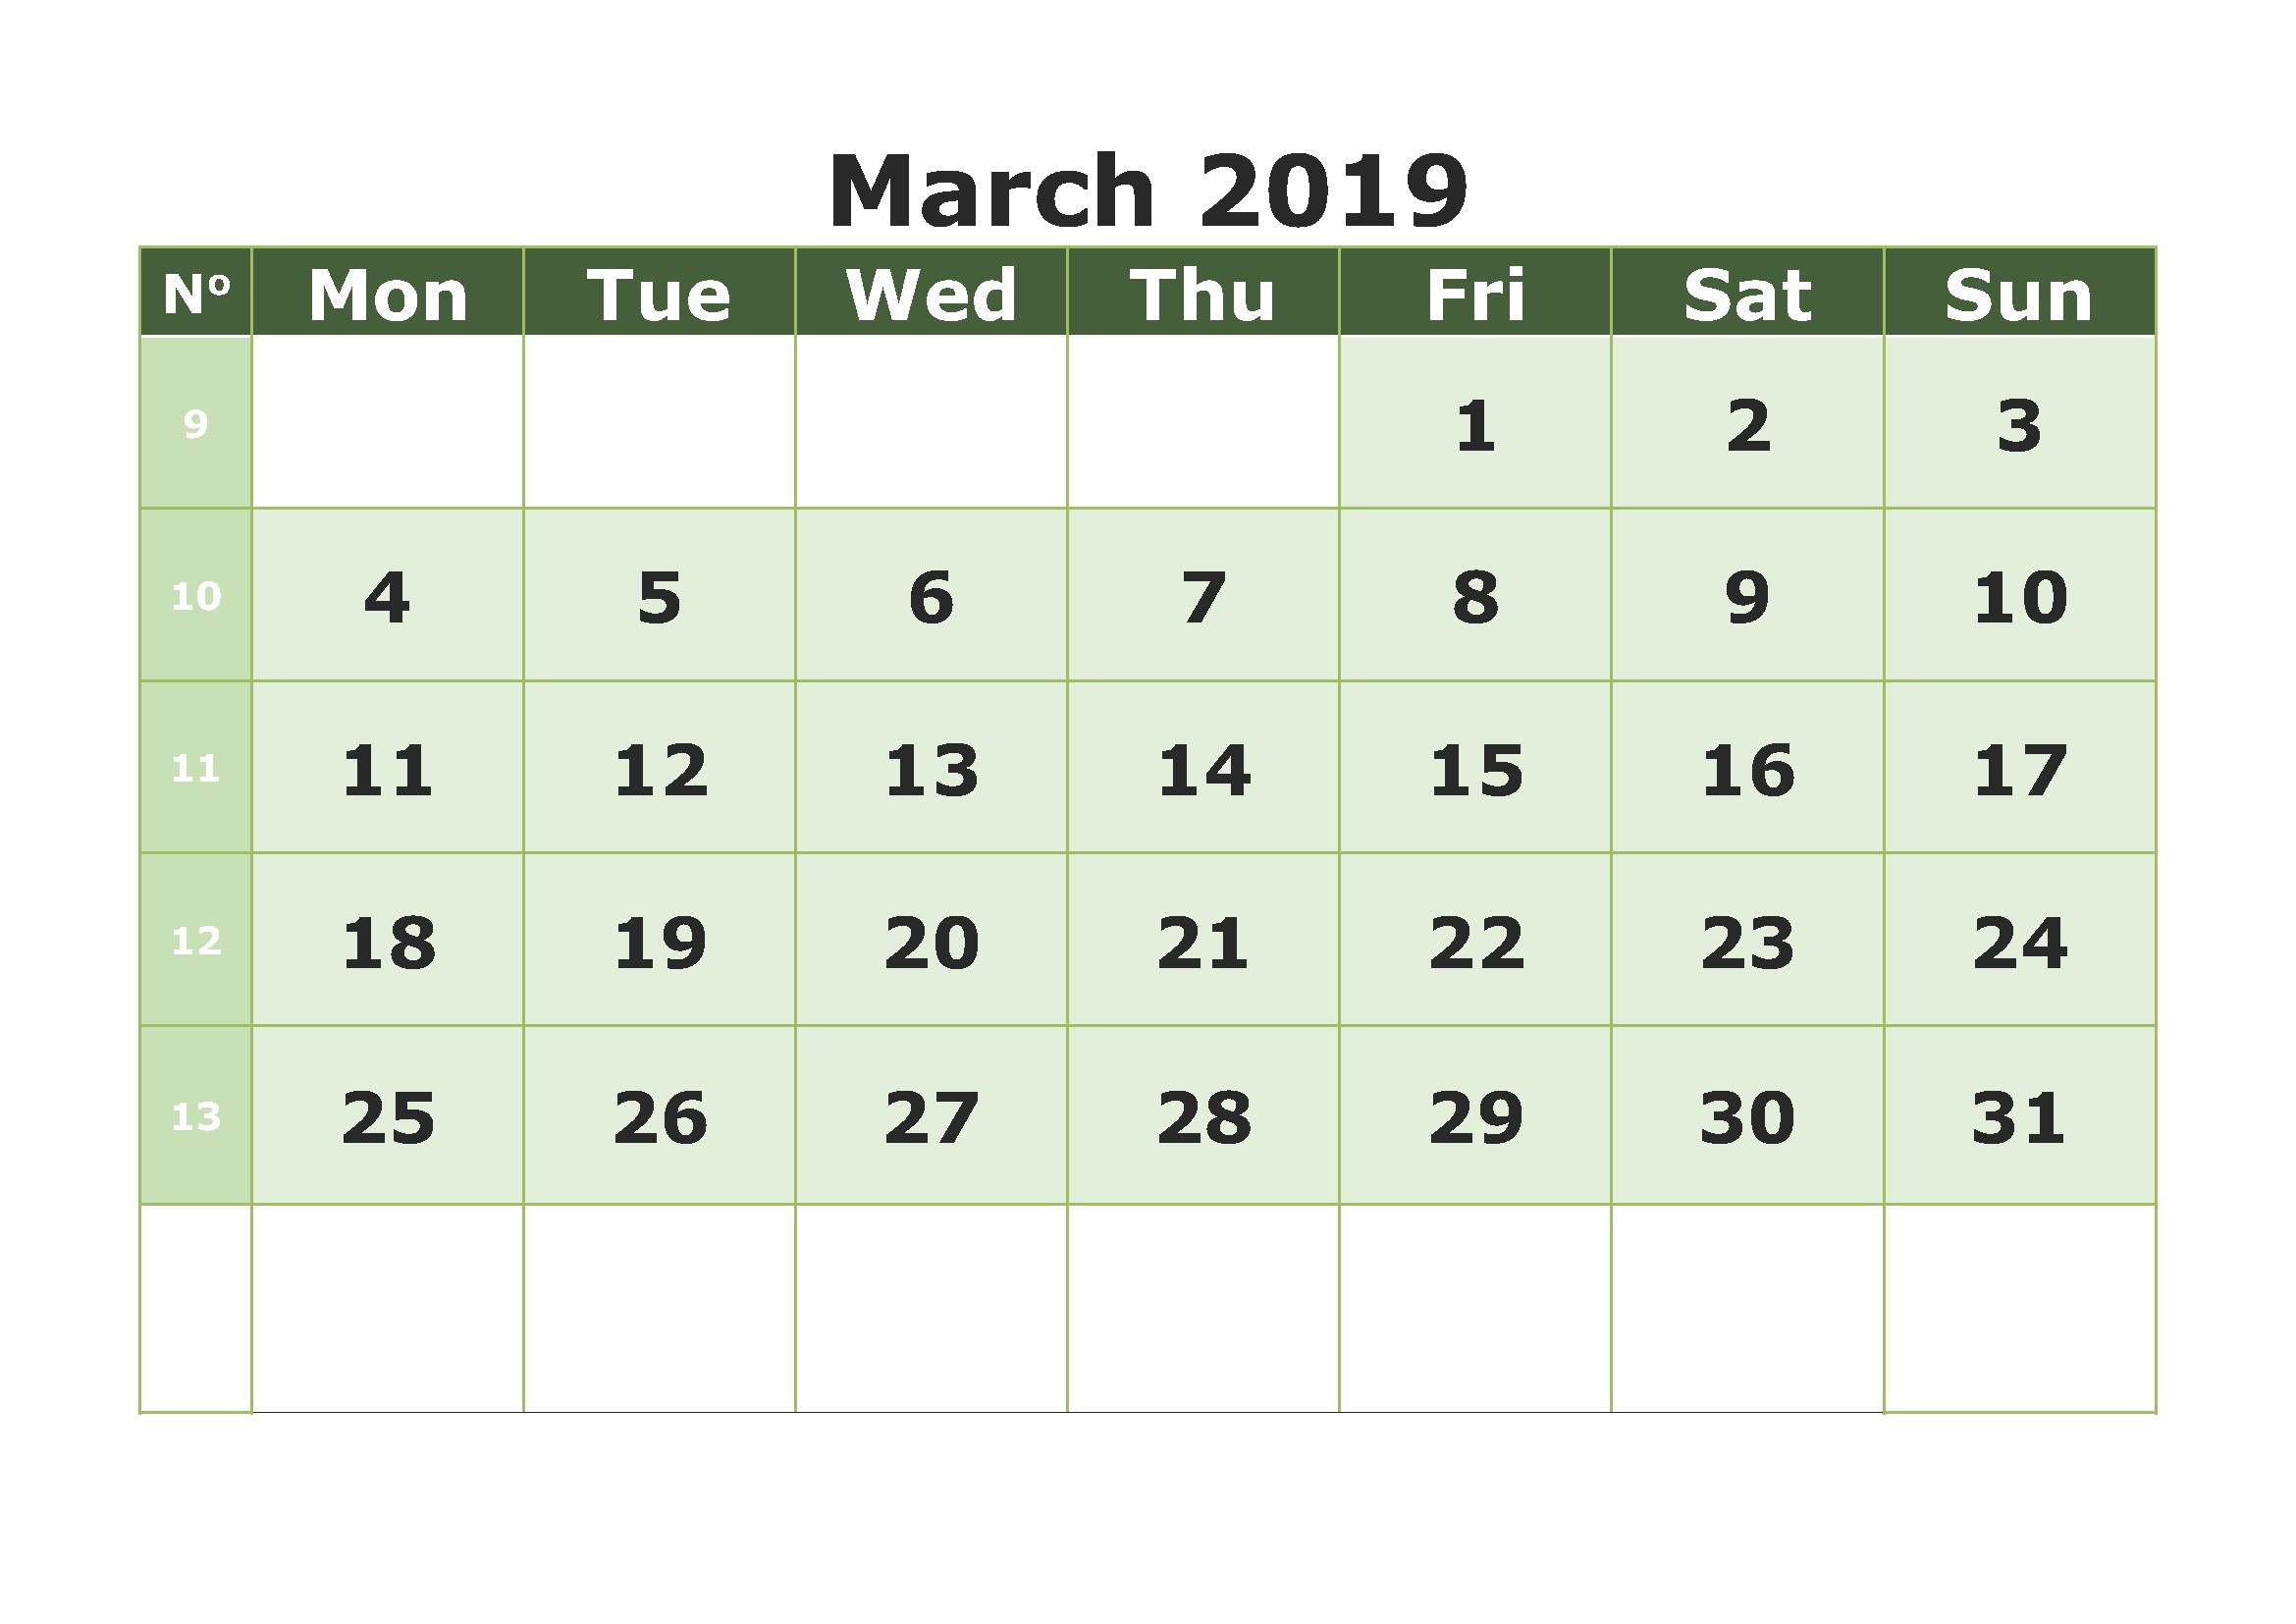 March Holiday Calendar 2019 Mejores Y Más Novedosos March 2019 islamic Calendar – March 2019 Calendar Printable Of March Holiday Calendar 2019 Mejores Y Más Novedosos March 2019 Calendar Printable with Holidays